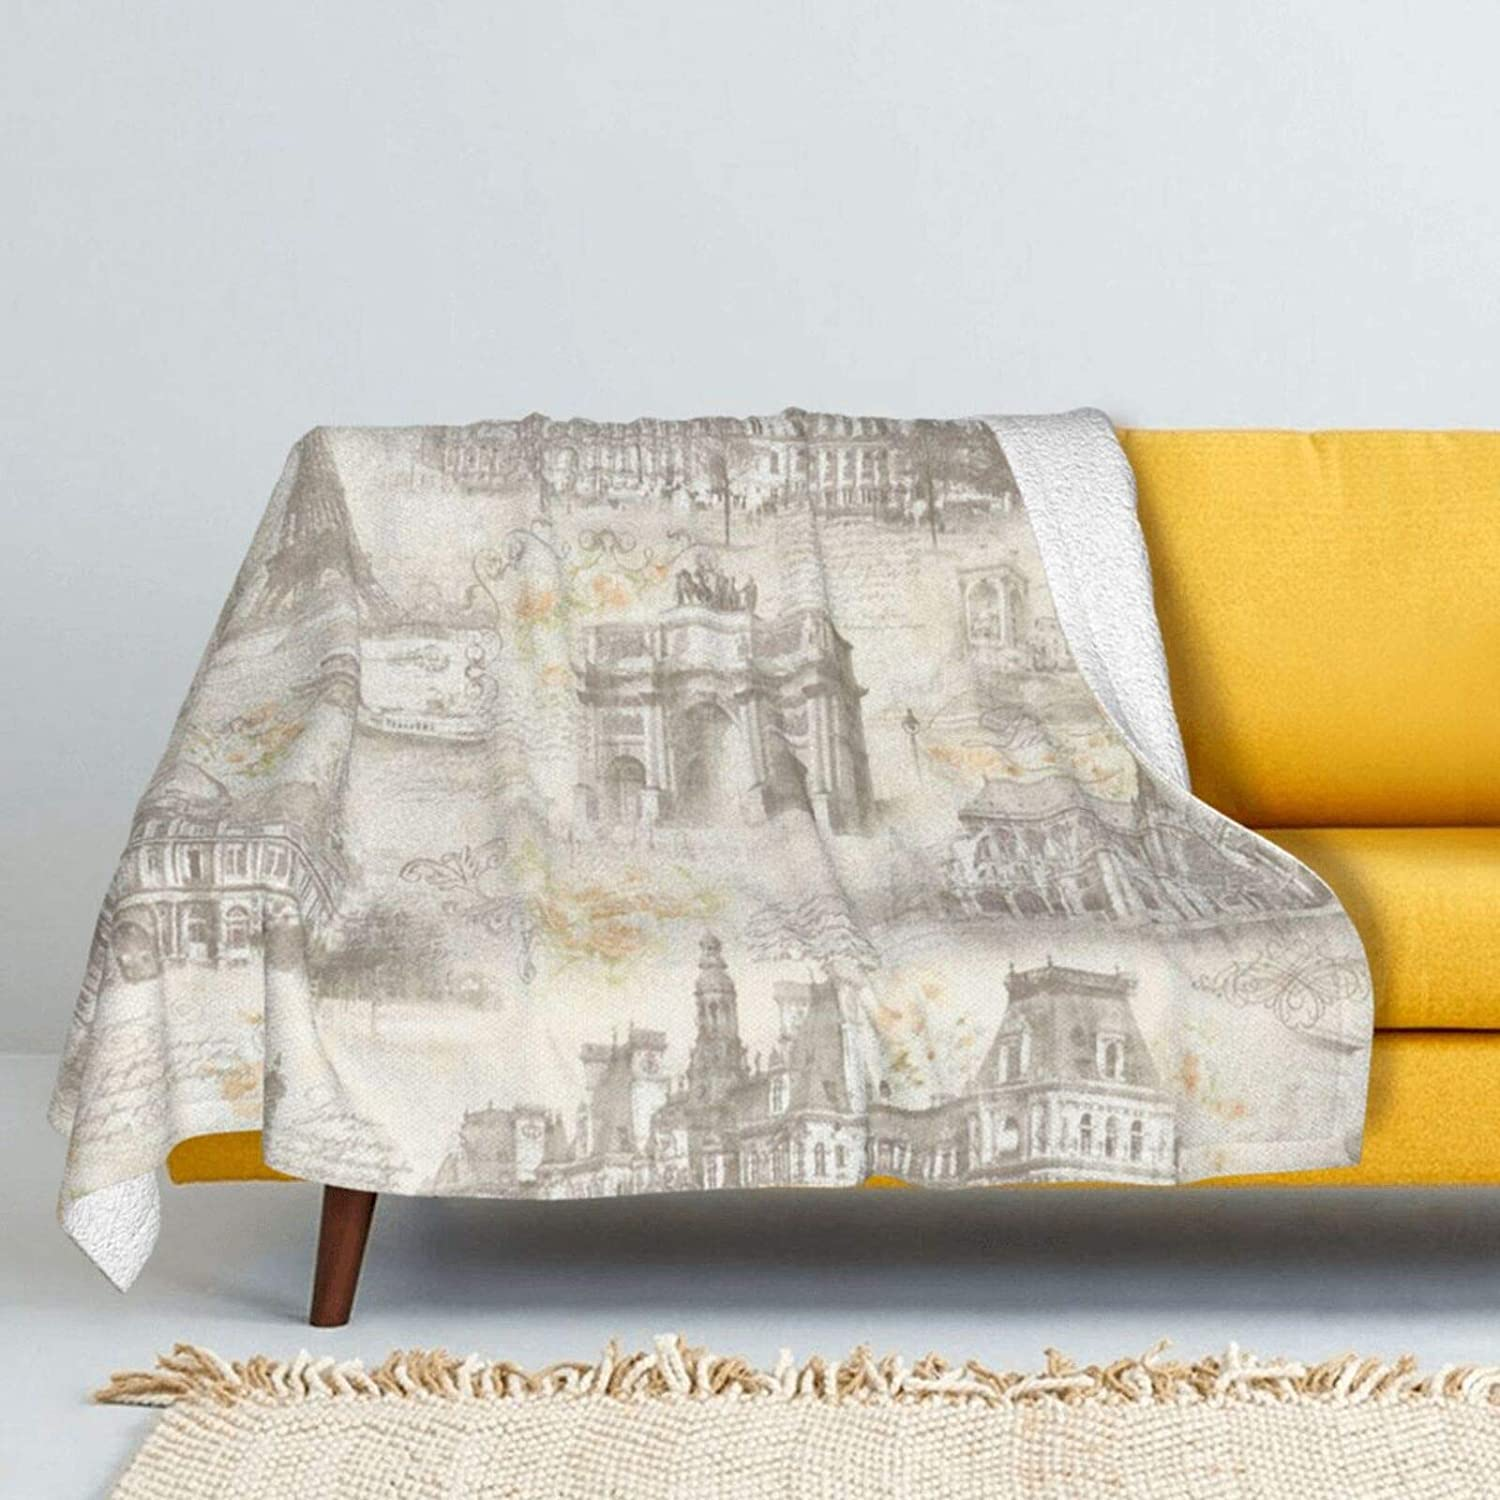 French Max 80% OFF Architectural Painting Lamb Attention brand Wool Blanket Super Soft Throw